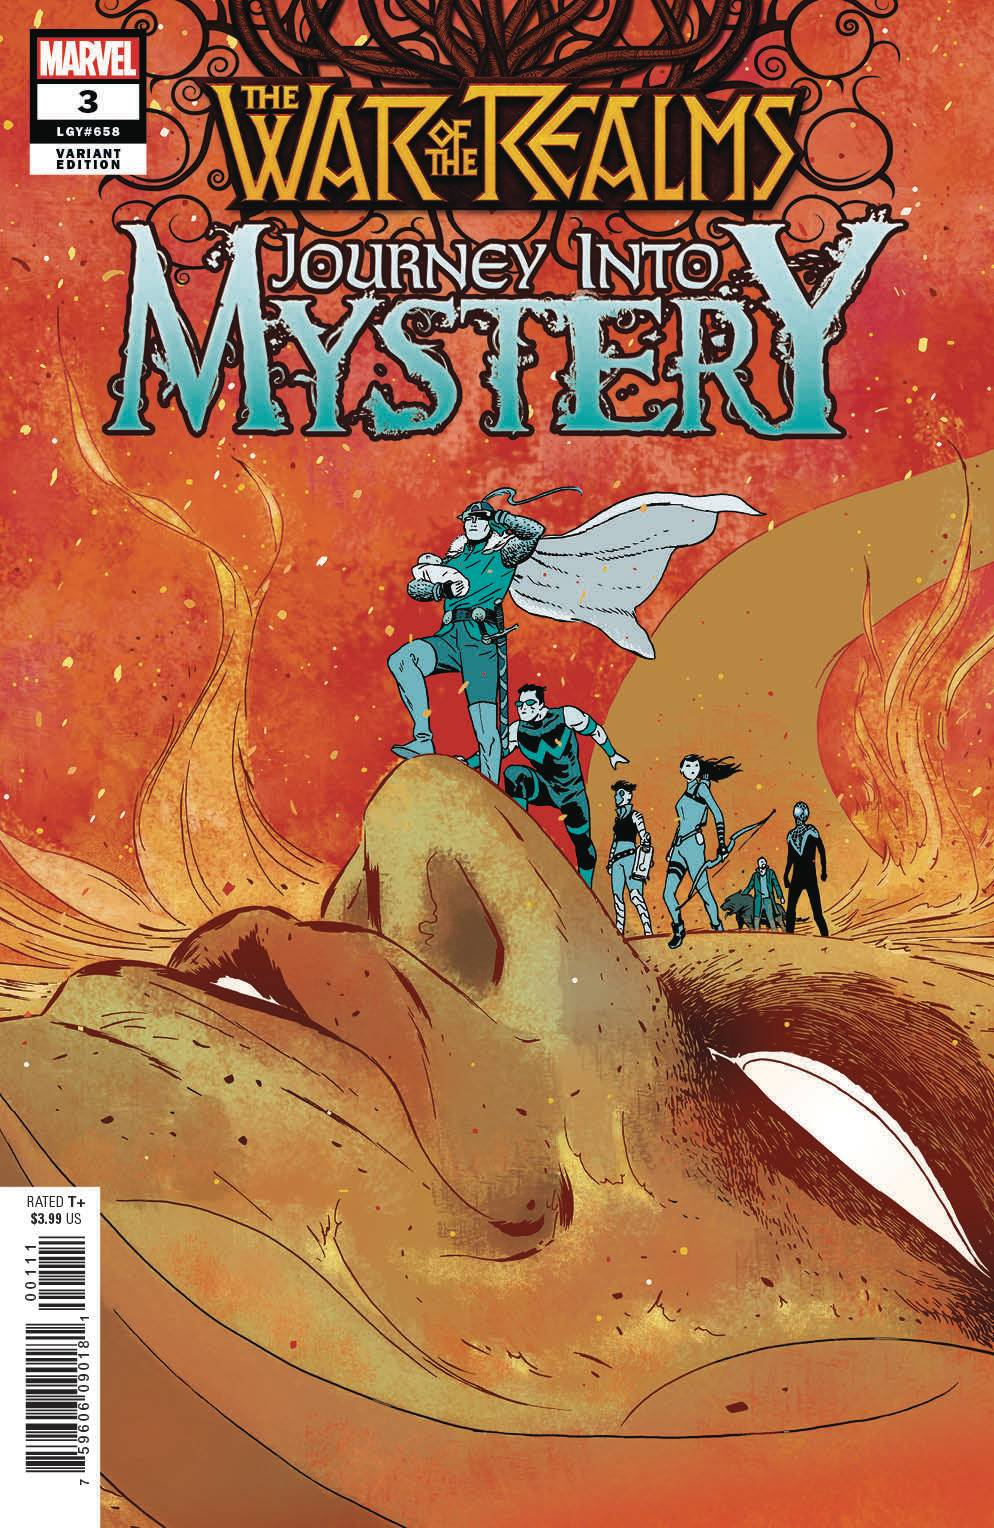 WAR OF REALMS JOURNEY INTO MYSTERY 3 of 5 NOWLAN VAR.jpg